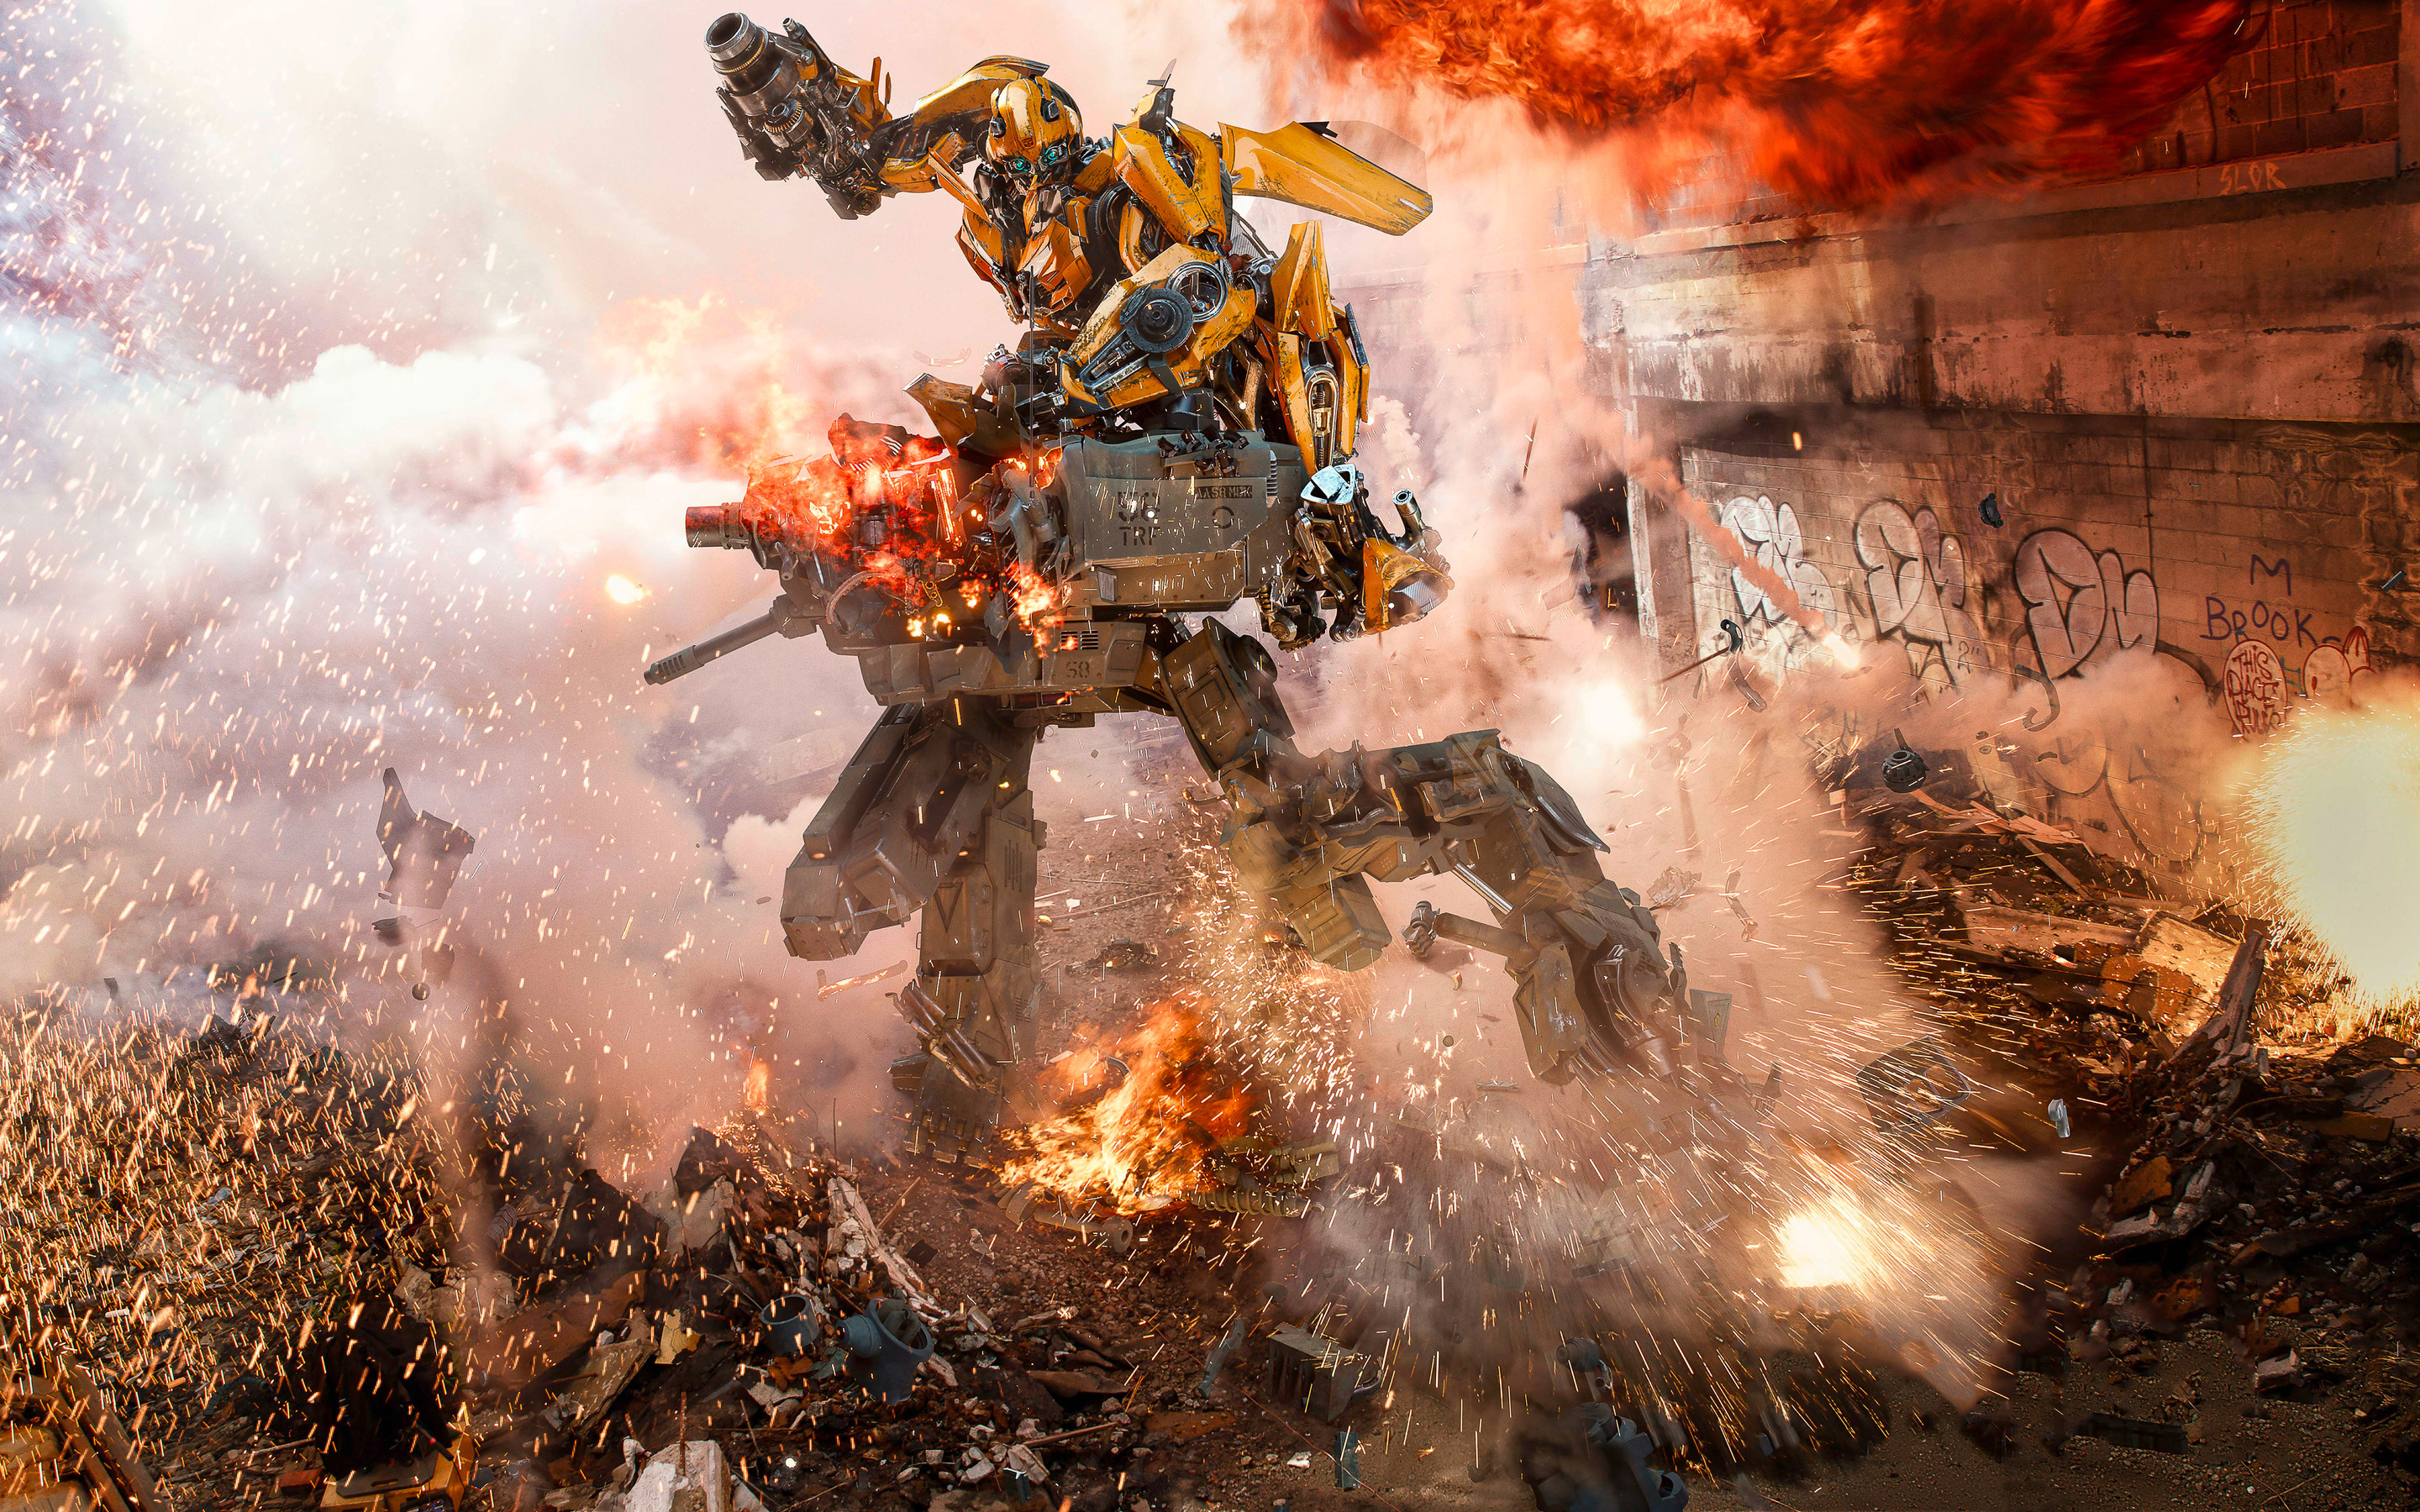 transformers-the-last-knight-bumblebee-goes-to-war-8k-16.jpg